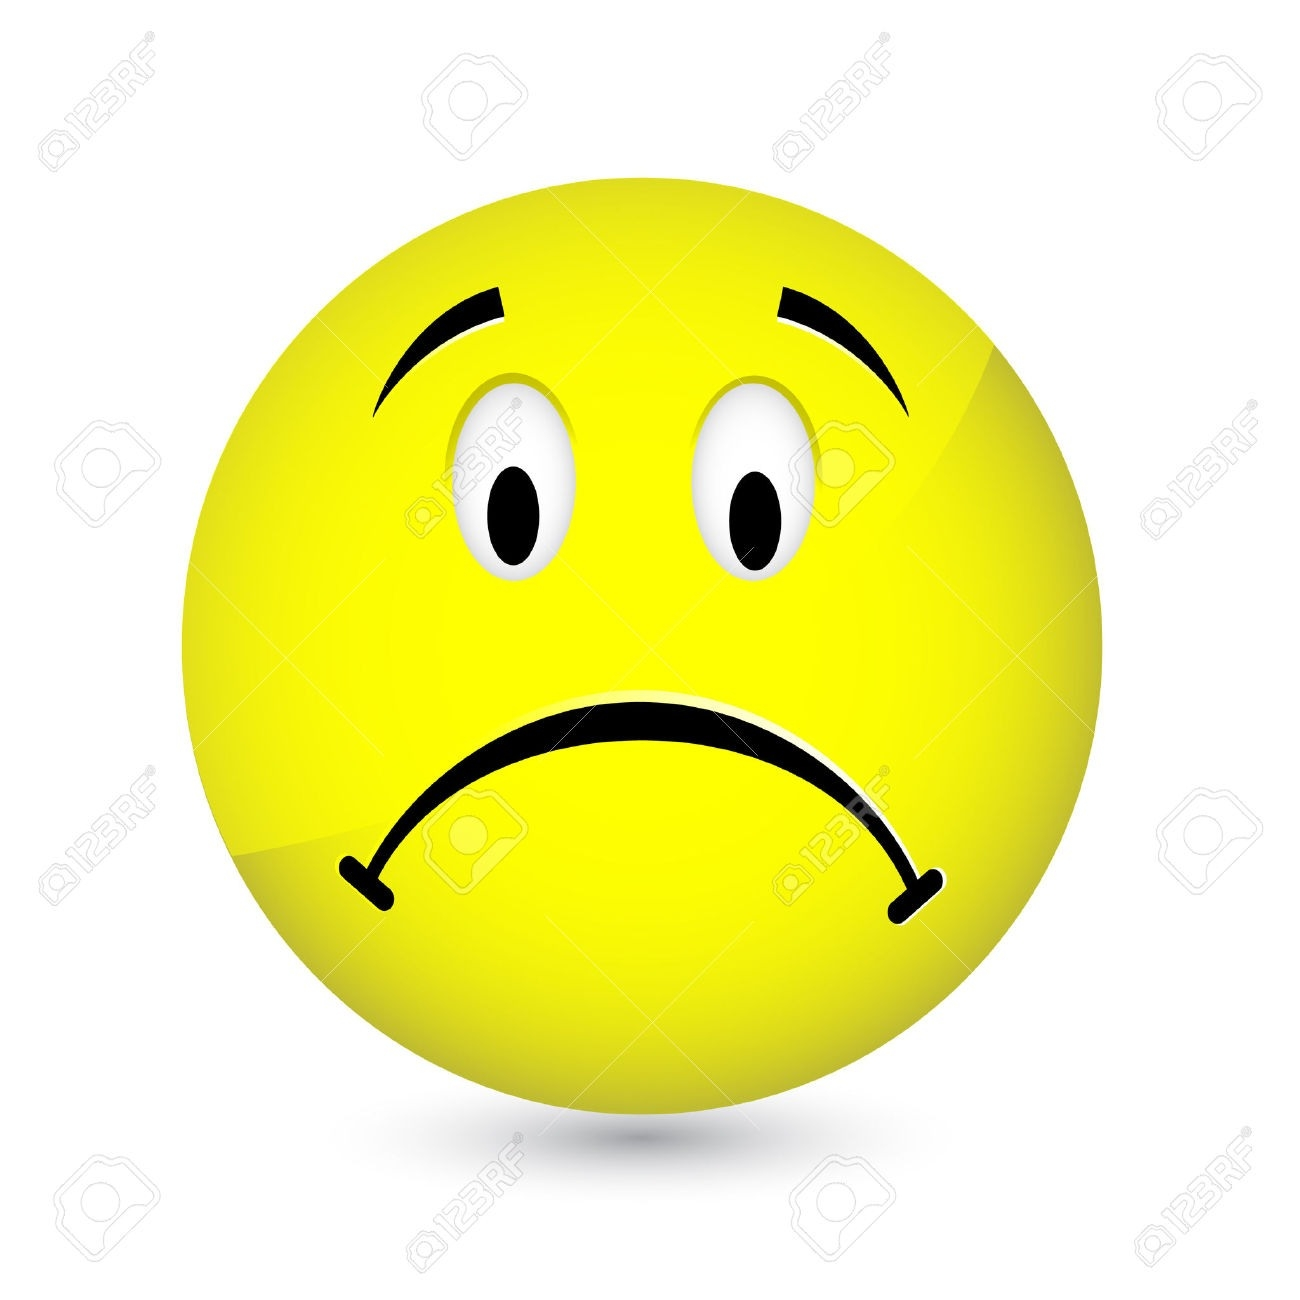 crying smiley face clipart